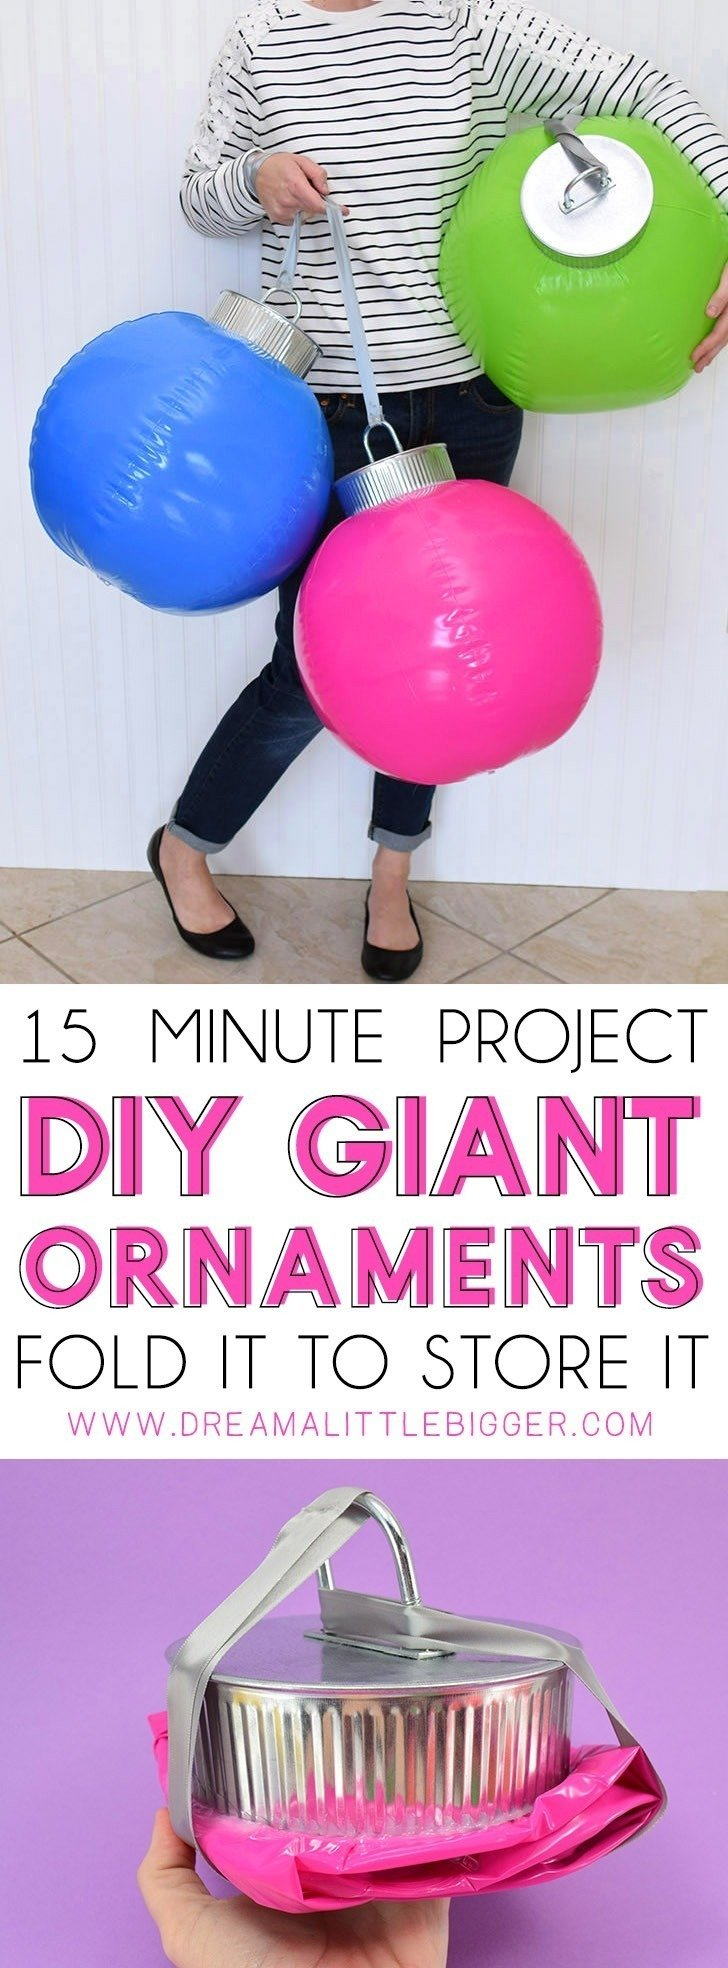 How cool are these DIY giant ornaments? And they fold in on themselves so you can easily store them from year to year!